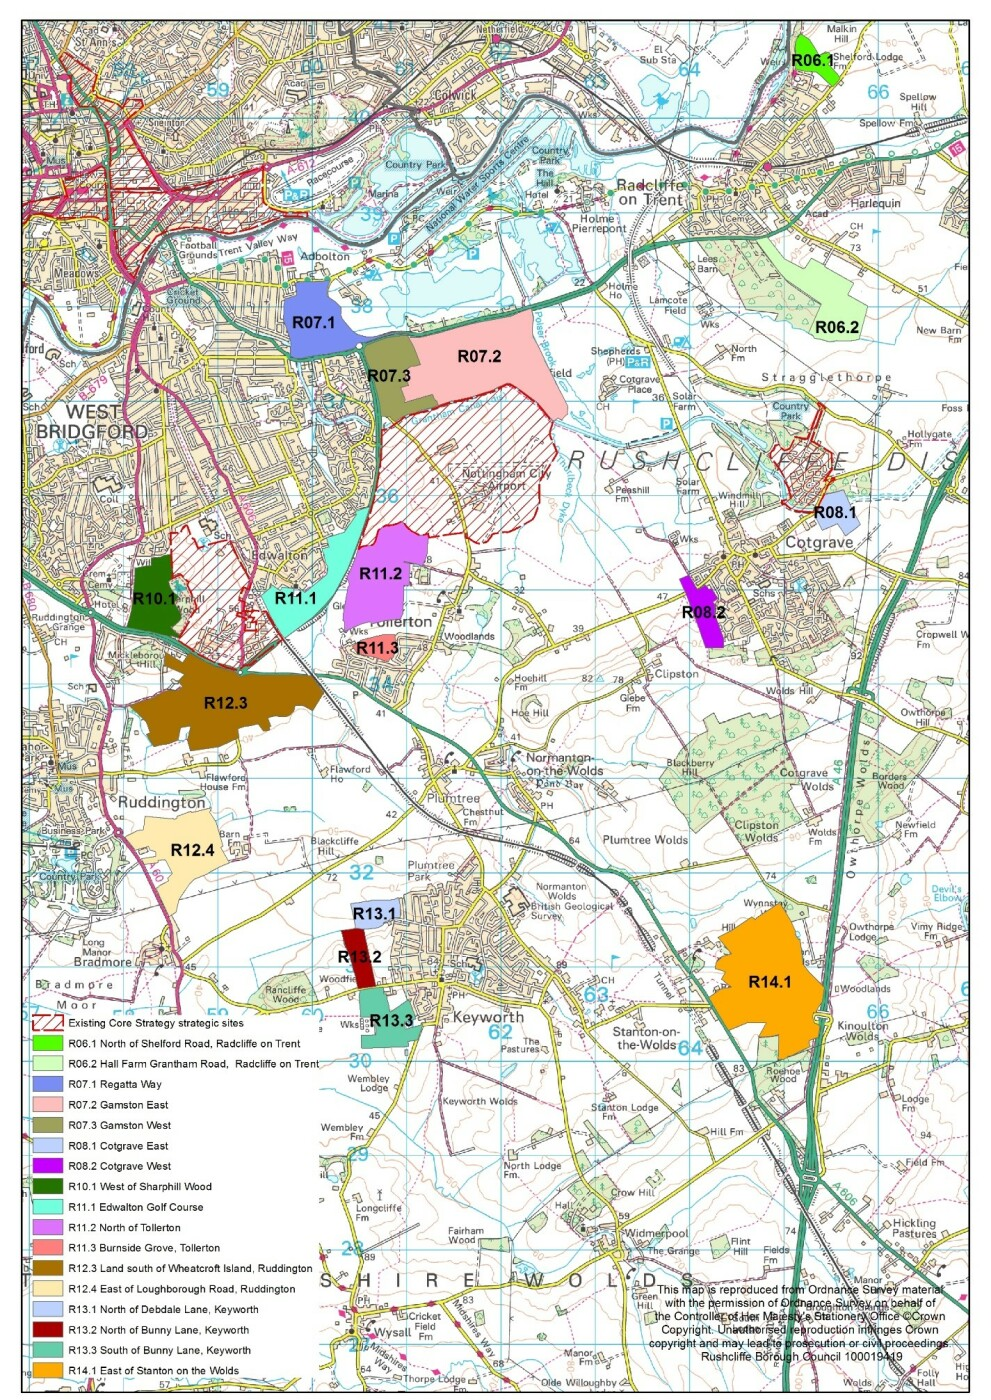 Greater Nottingham Strategic Plan - Growth Options Consultation (July 2020)